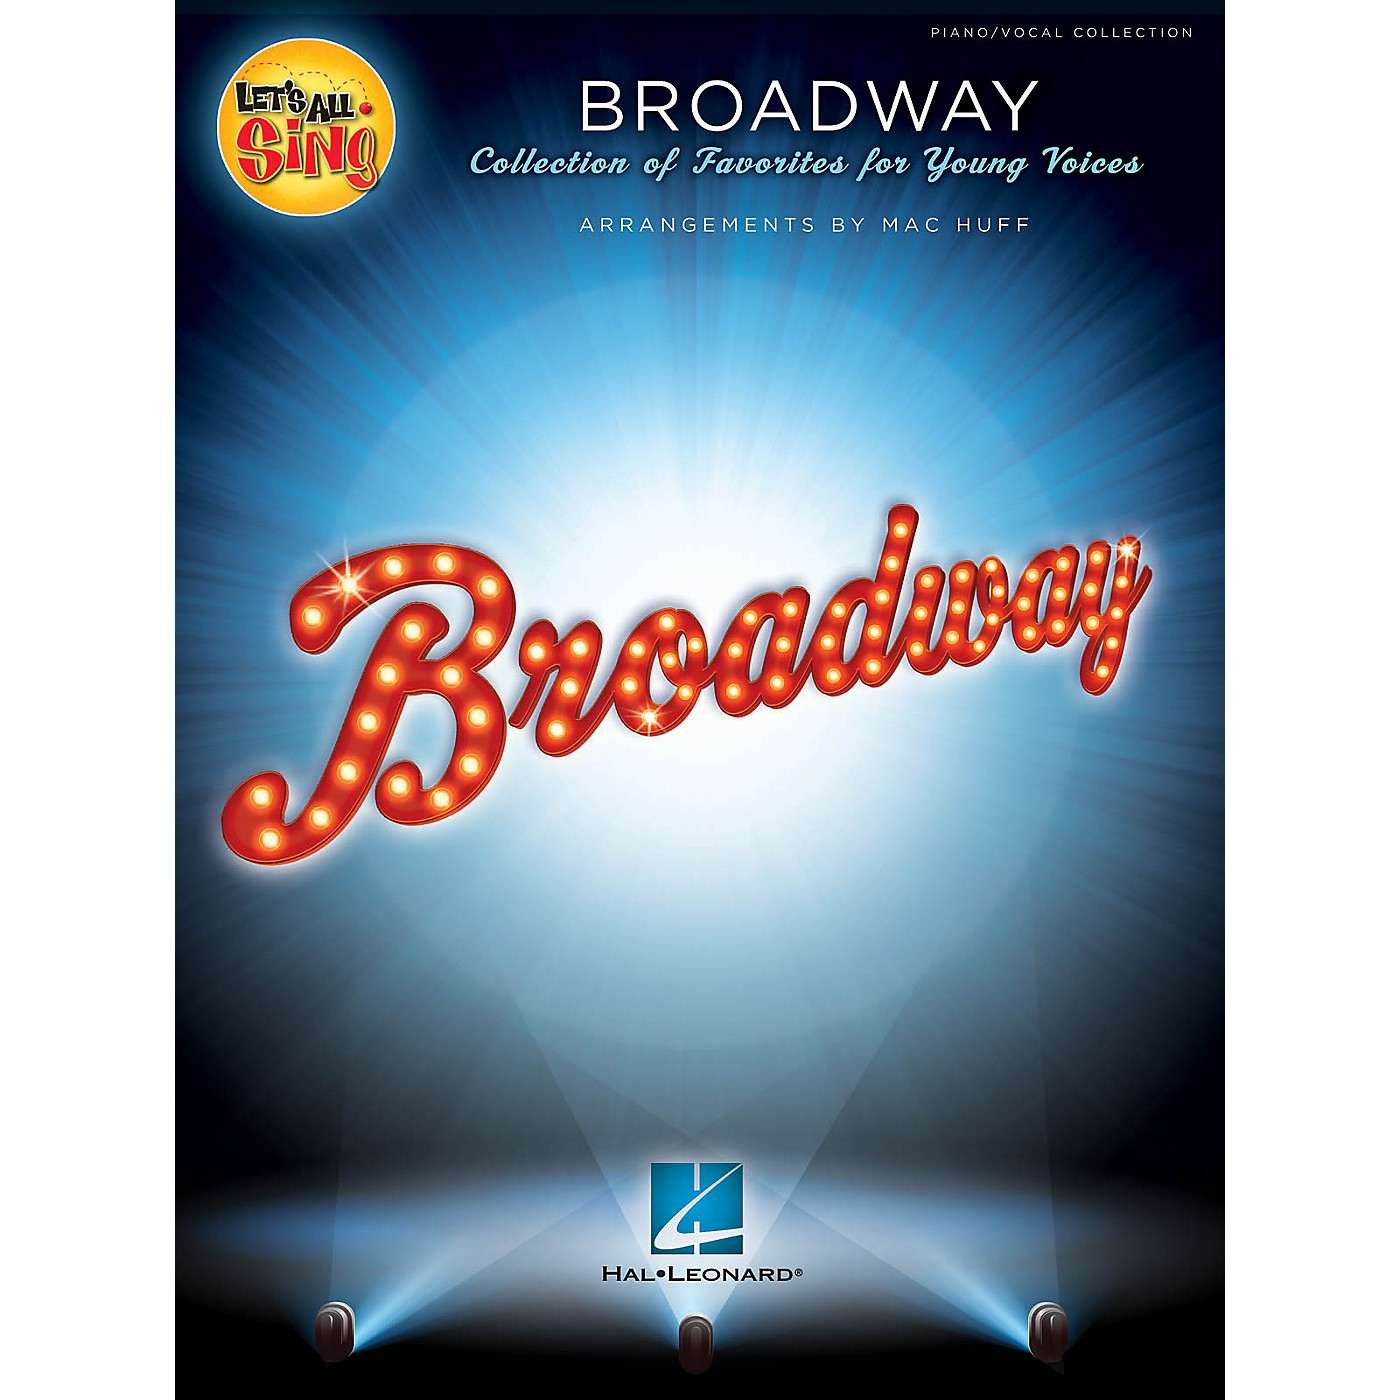 Hal Leonard Let's All Sing Broadway (Collection of Favorites for Young Voices) Singer 10 Pak Arranged by Mac Huff thumbnail